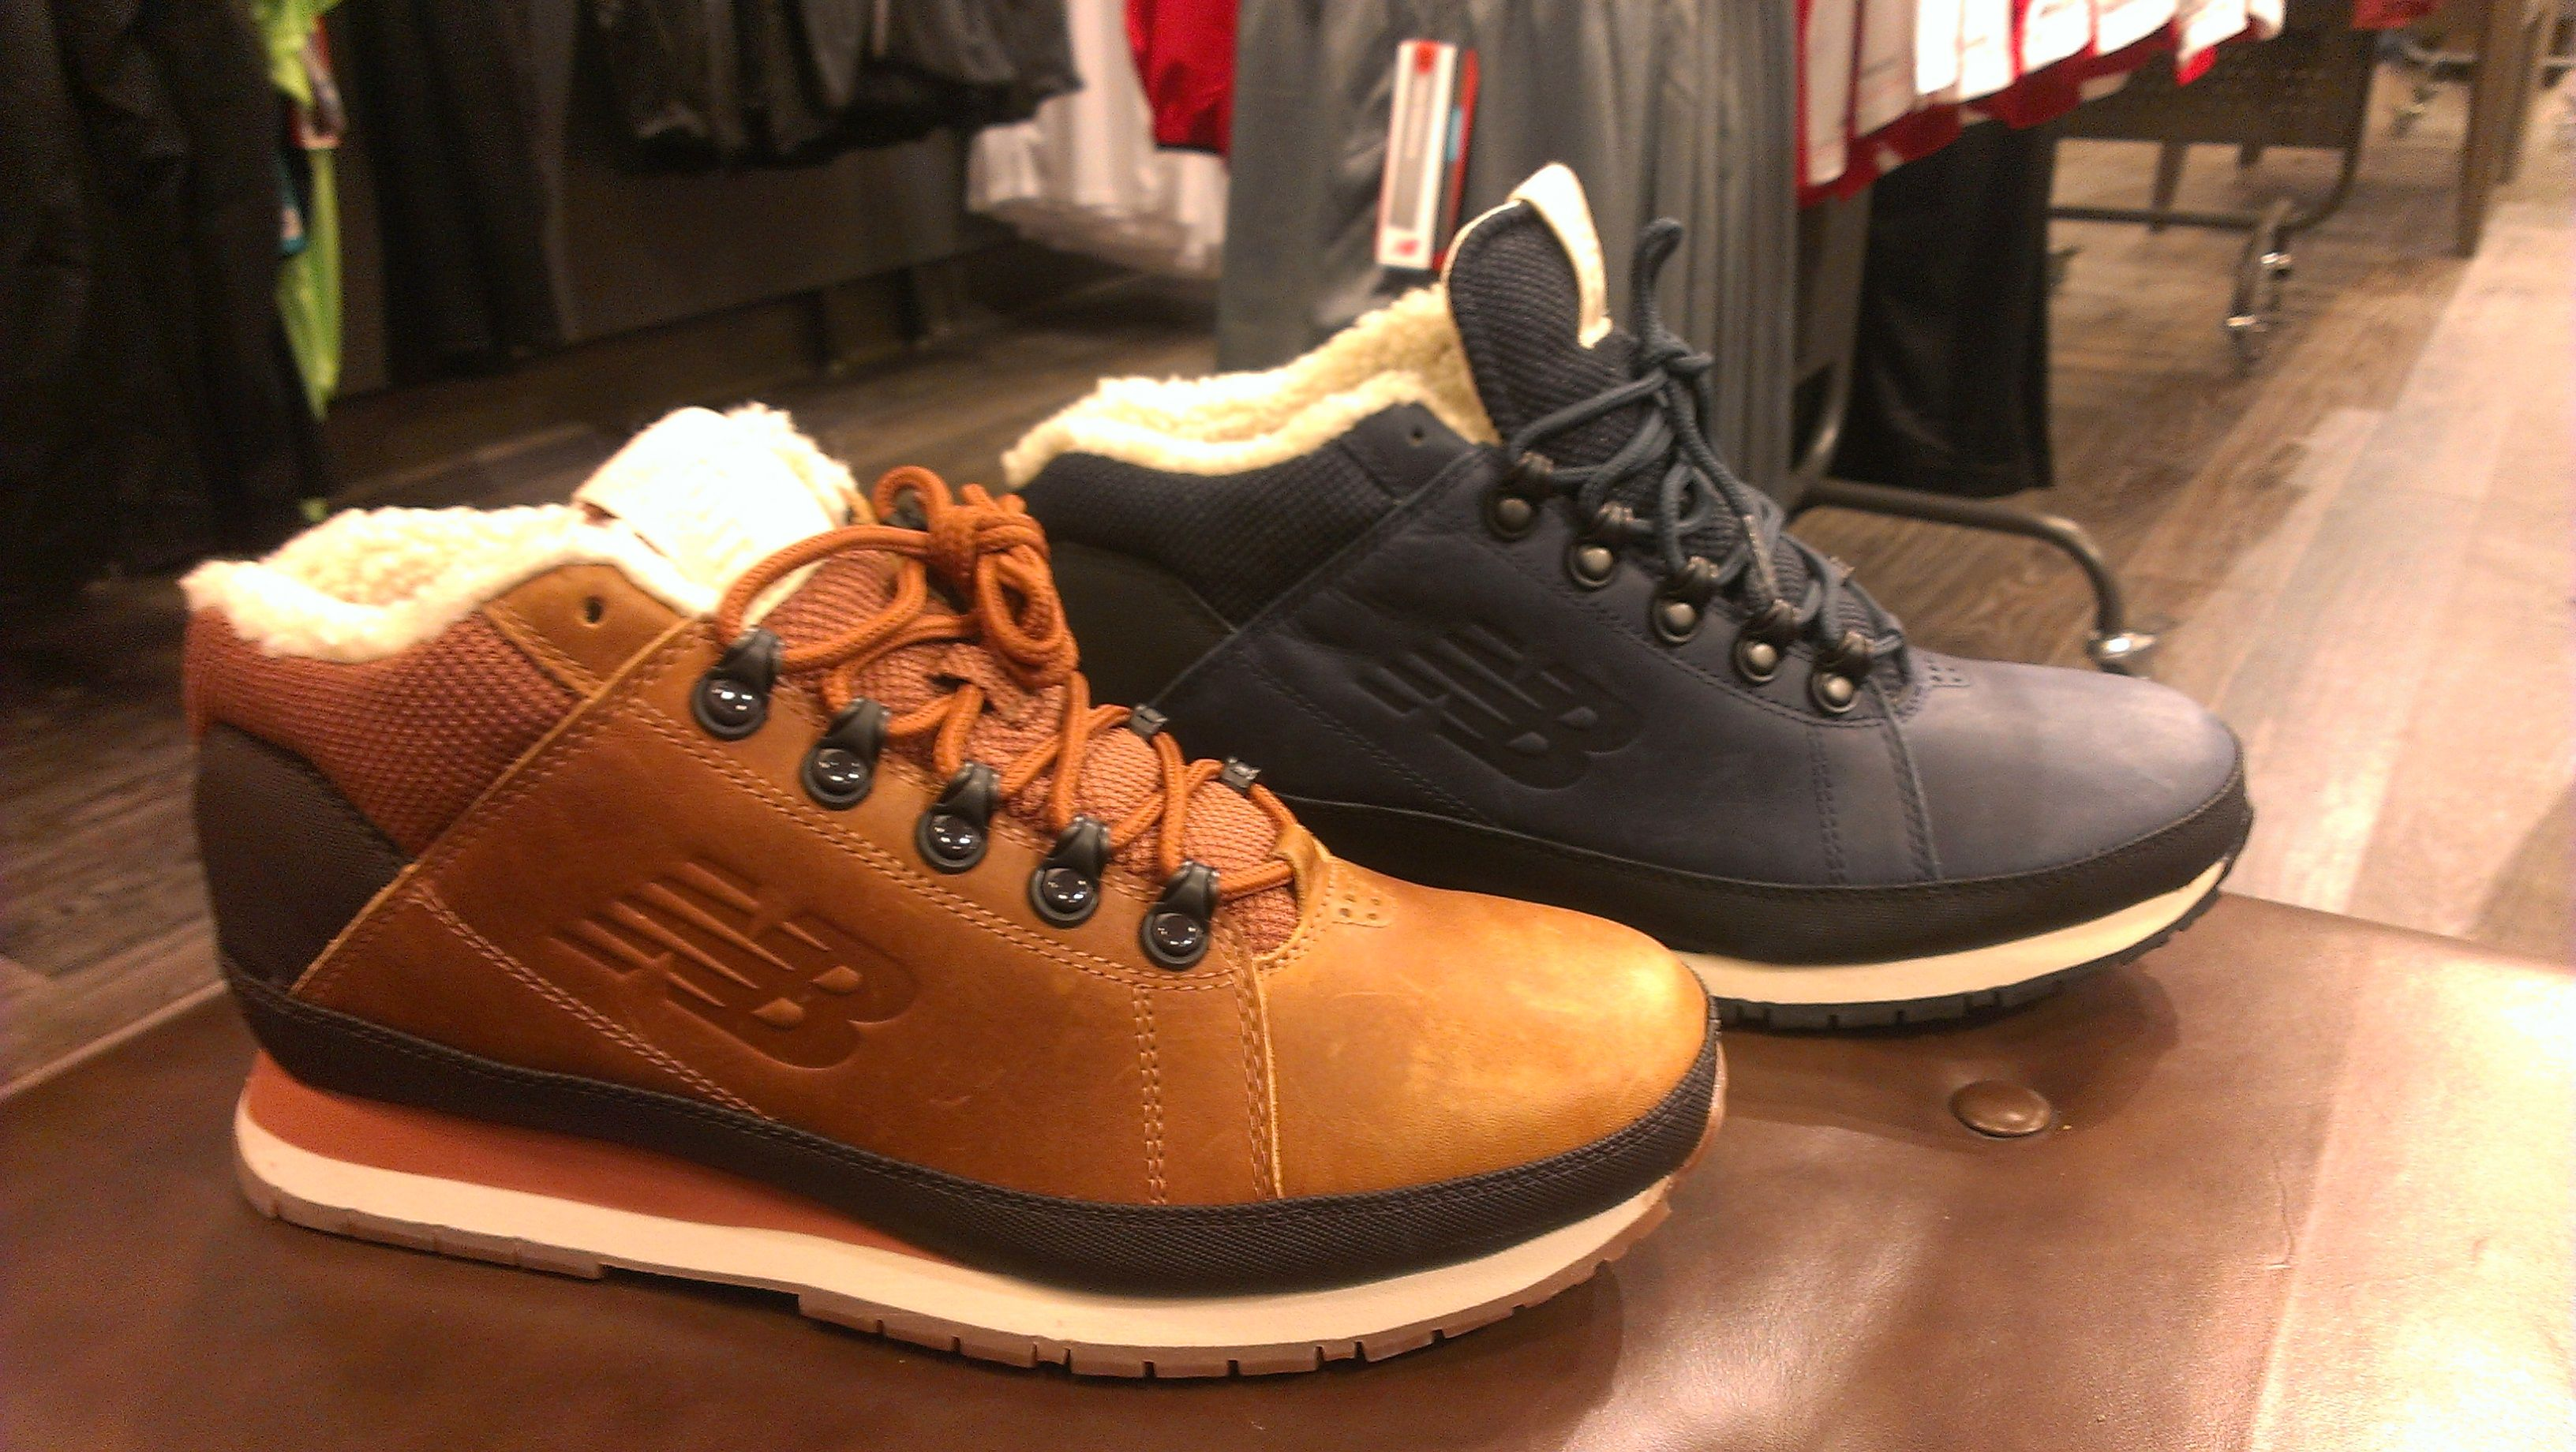 a new Hiker from the New Balance Classic department. Fur and Leather, doesn'